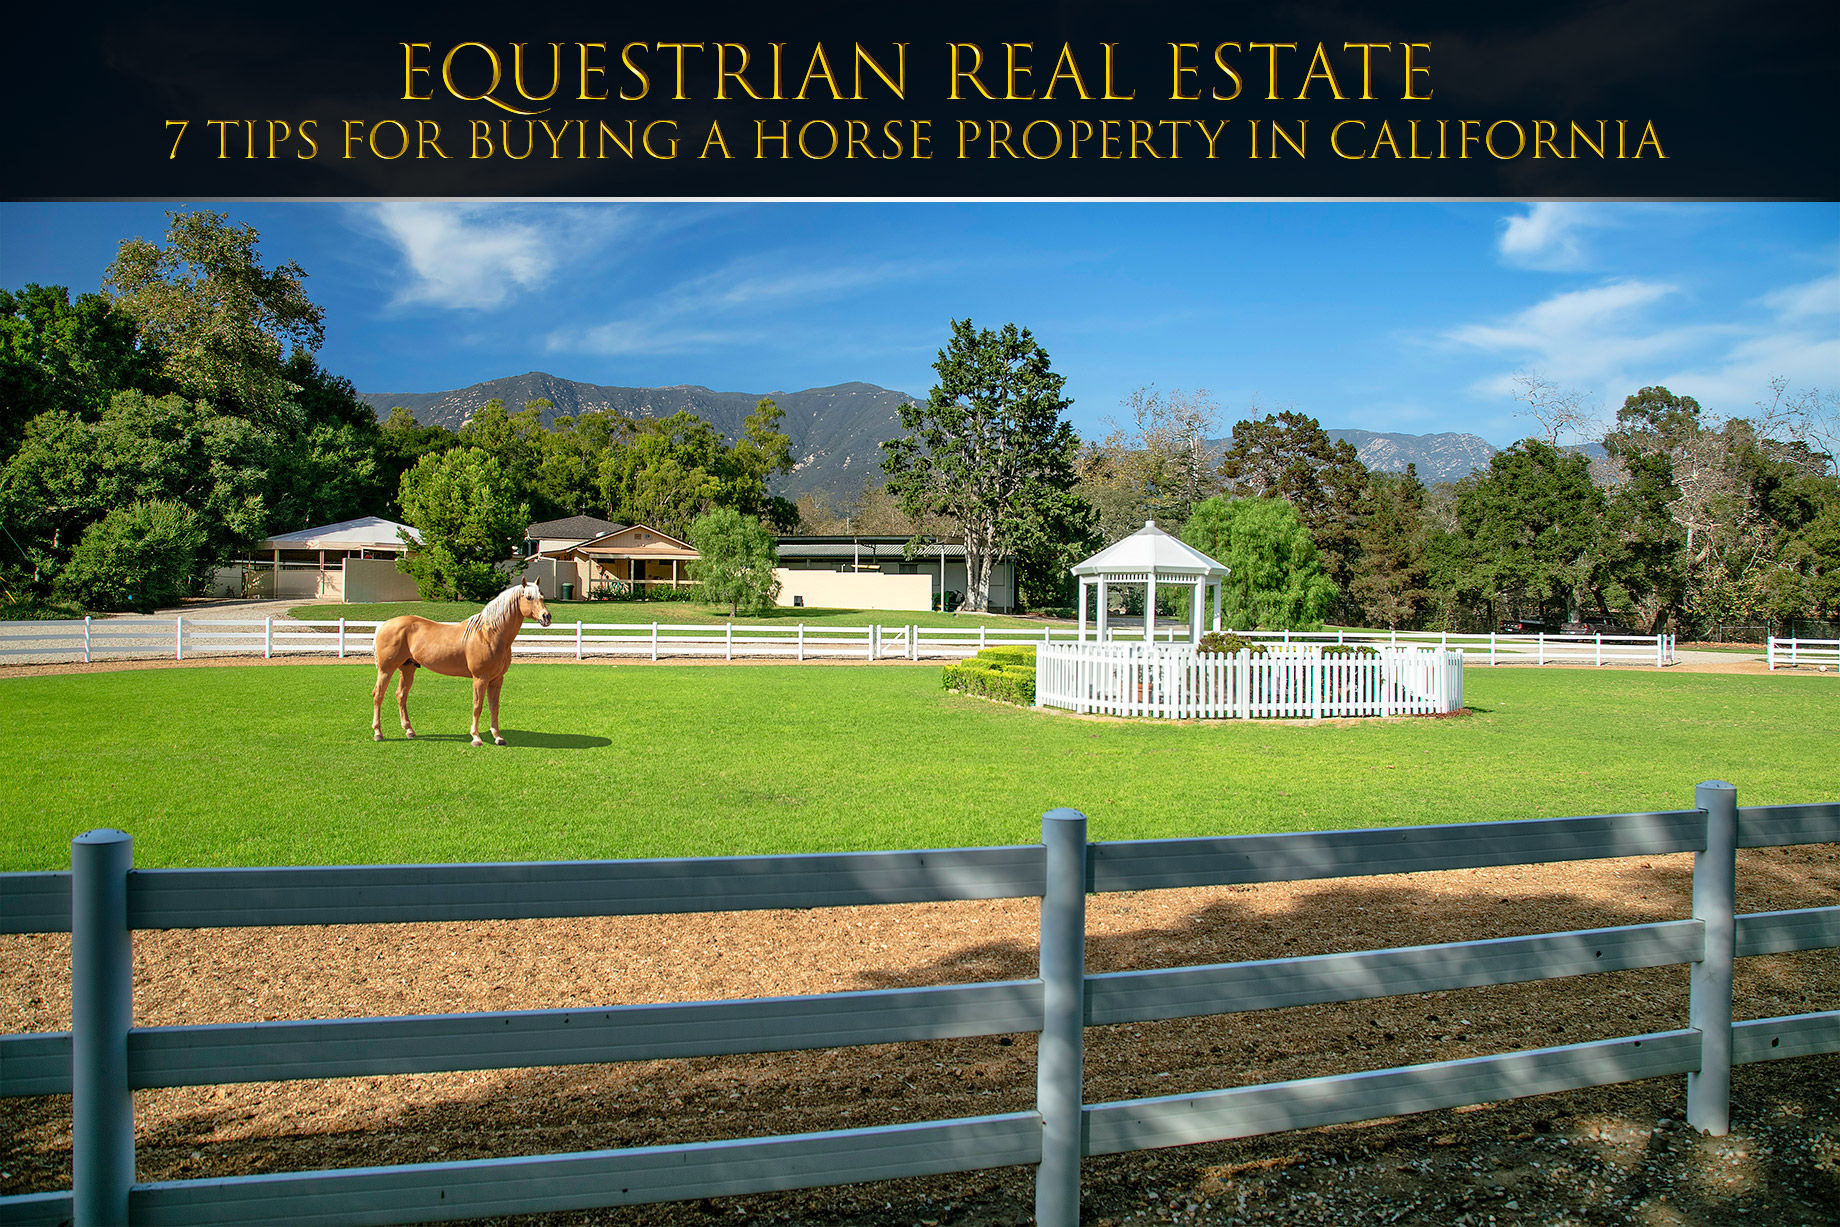 Equestrian Real Estate - 7 Tips for Buying A Horse Property In California